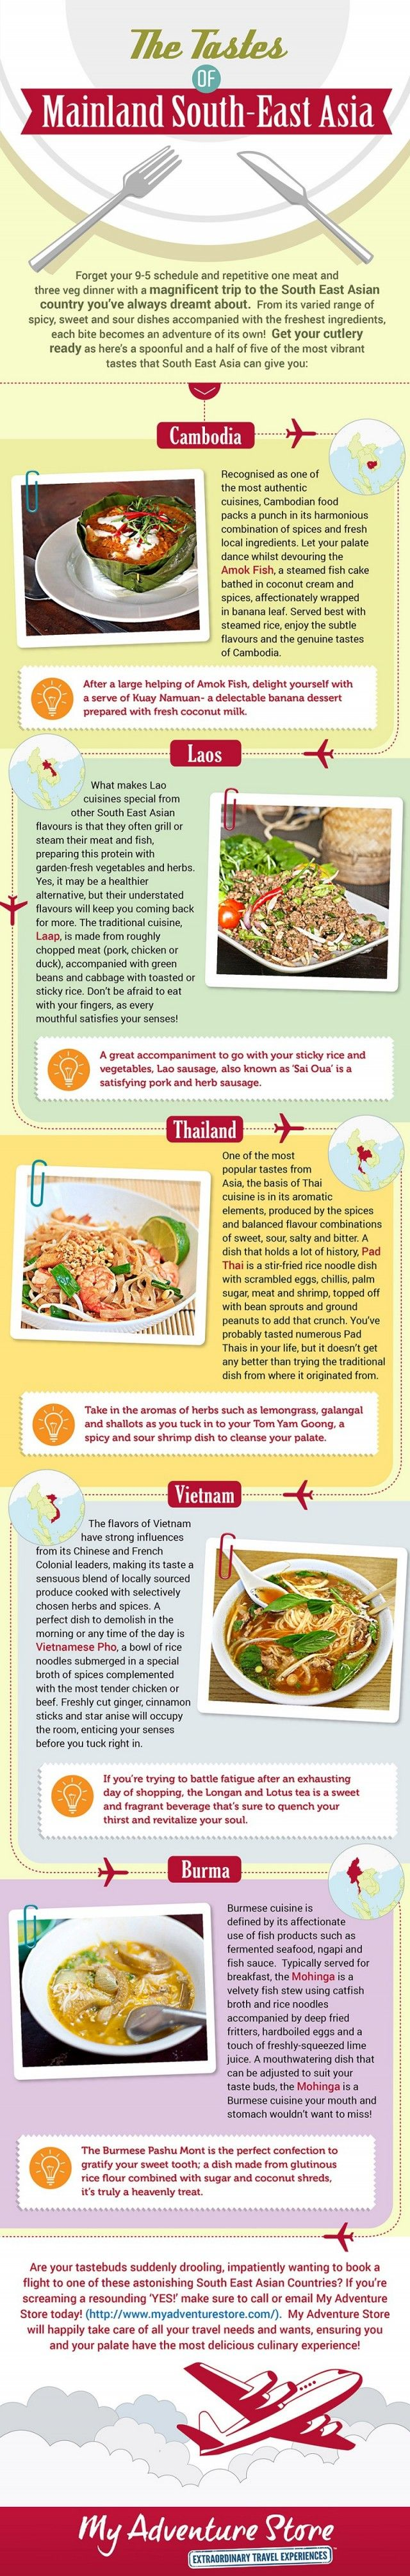 Tastes-of-Mainland-SE-Asia-Infographic